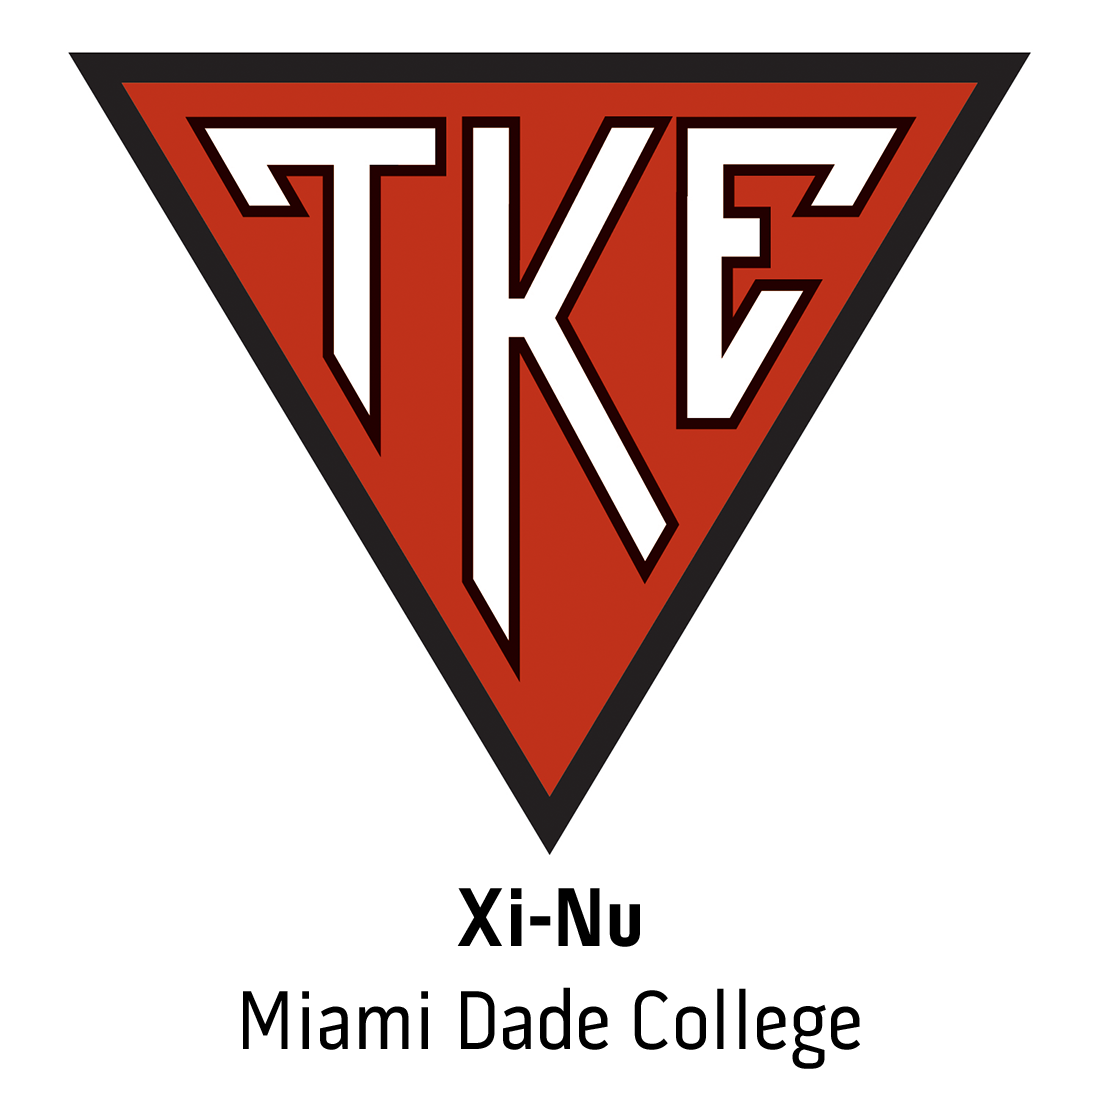 Xi-Nu Chapter at Miami Dade College